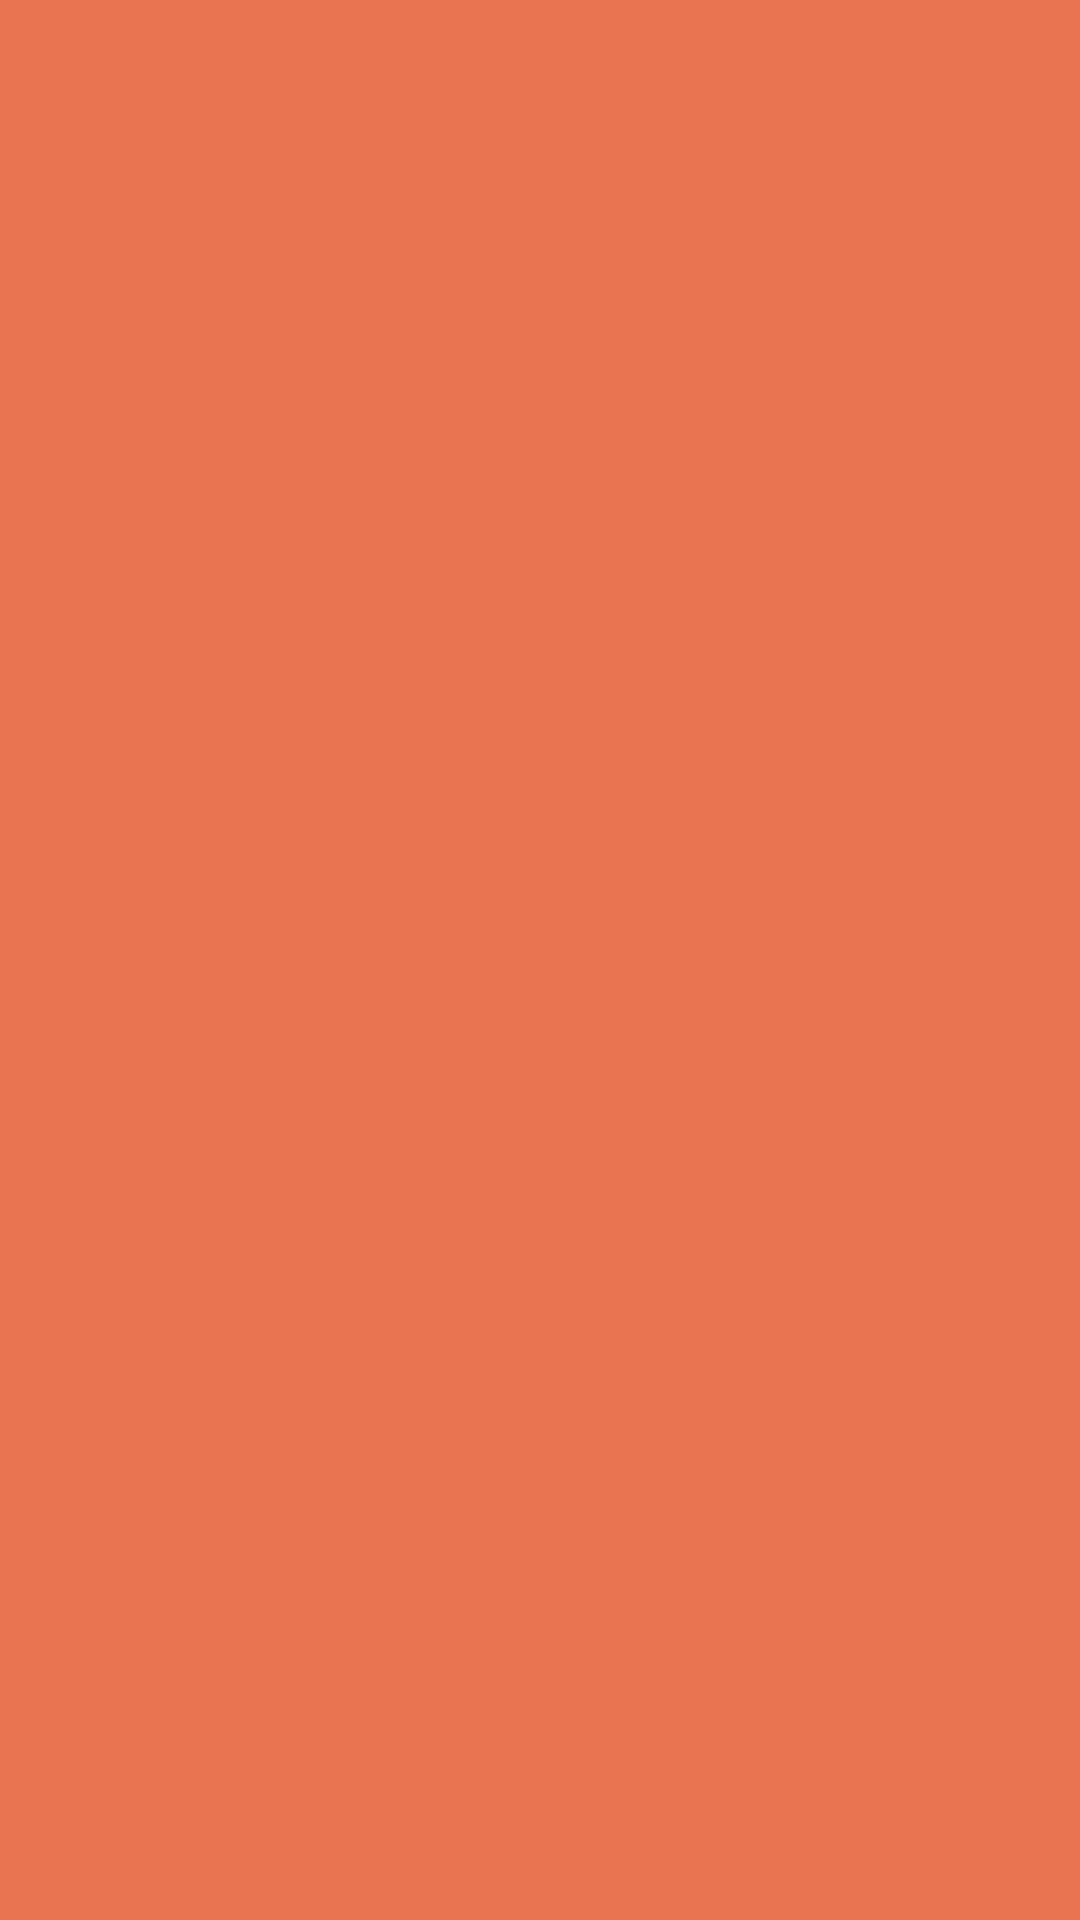 1080x1920 Light Red Ochre Solid Color Background